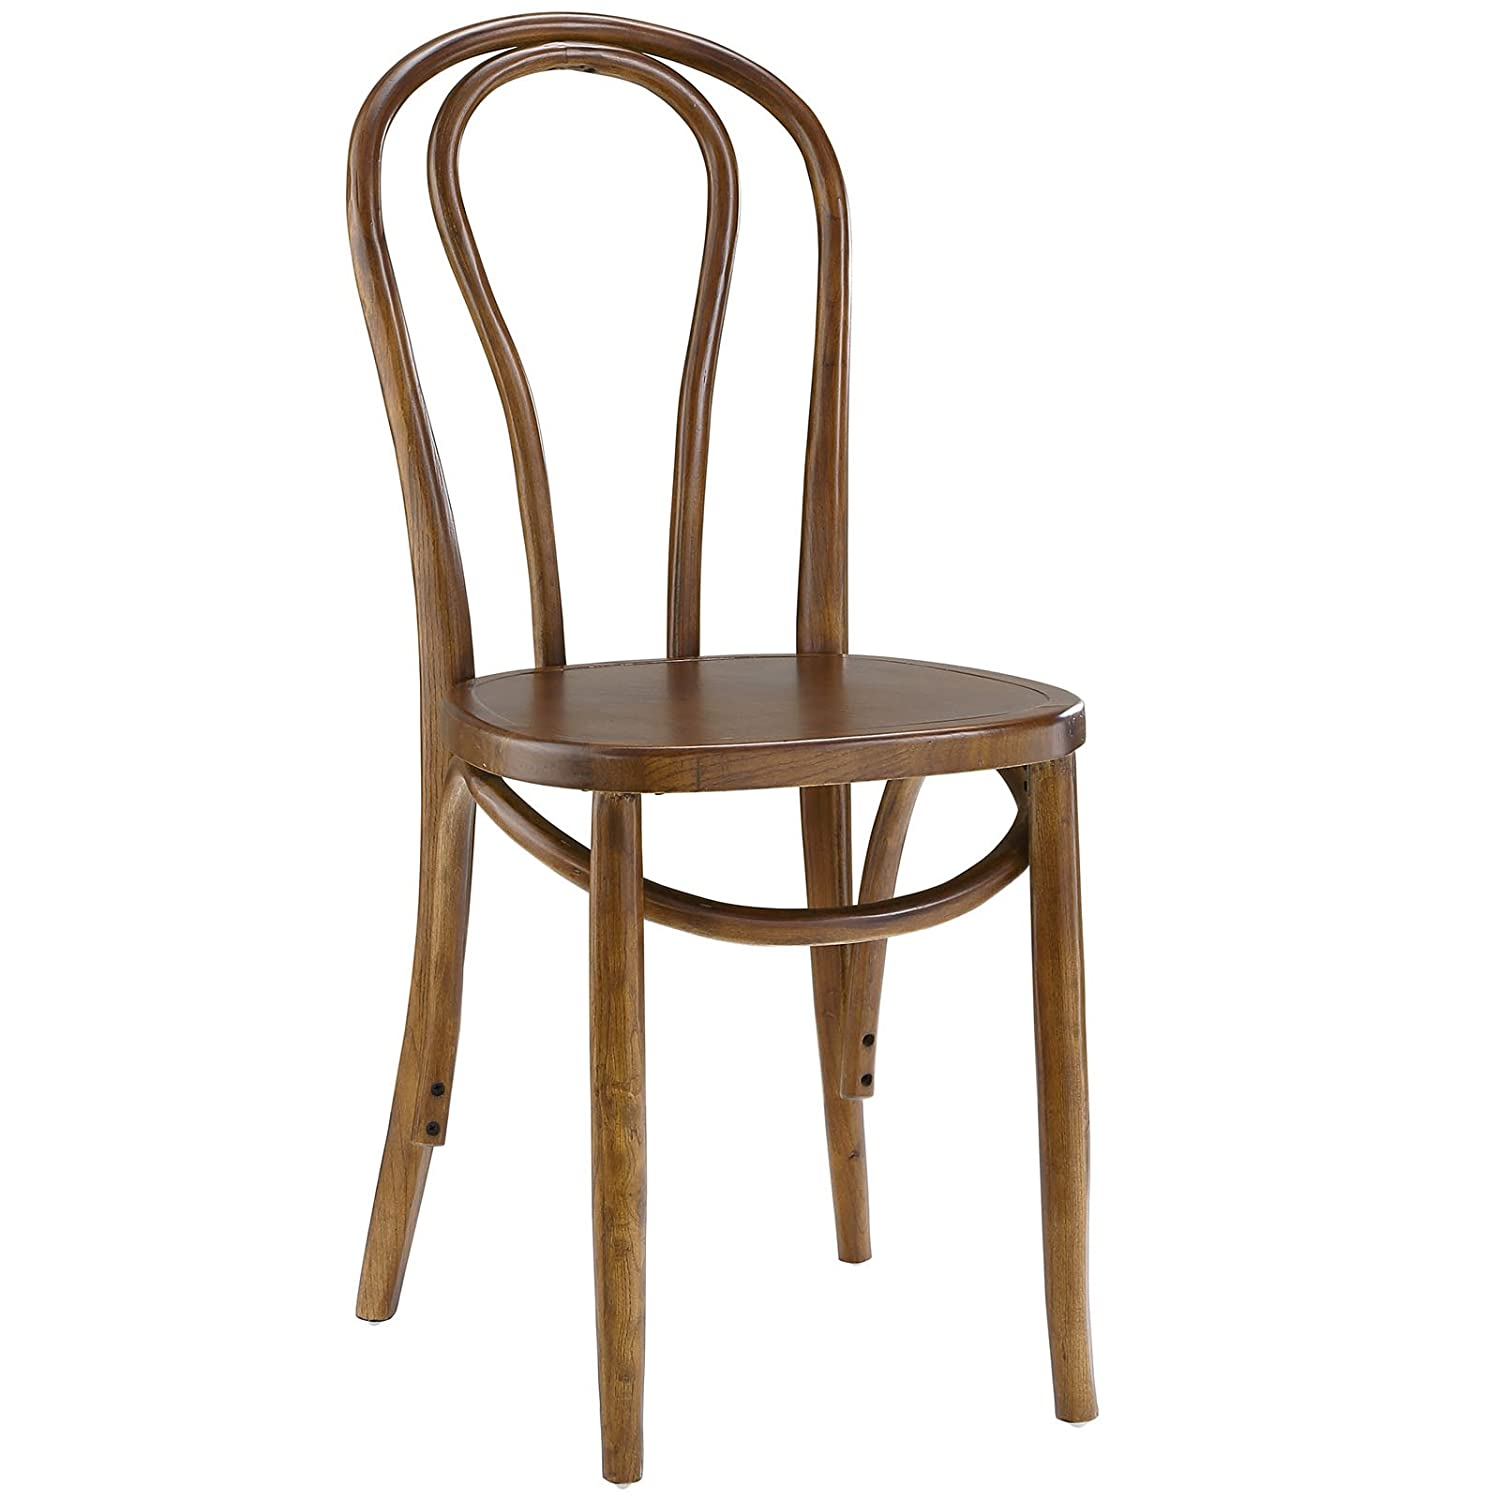 Modway Eon Natural Elm Wood Bistro Dining Side Chair in Black Modway Inc. EEI-1543-BLK